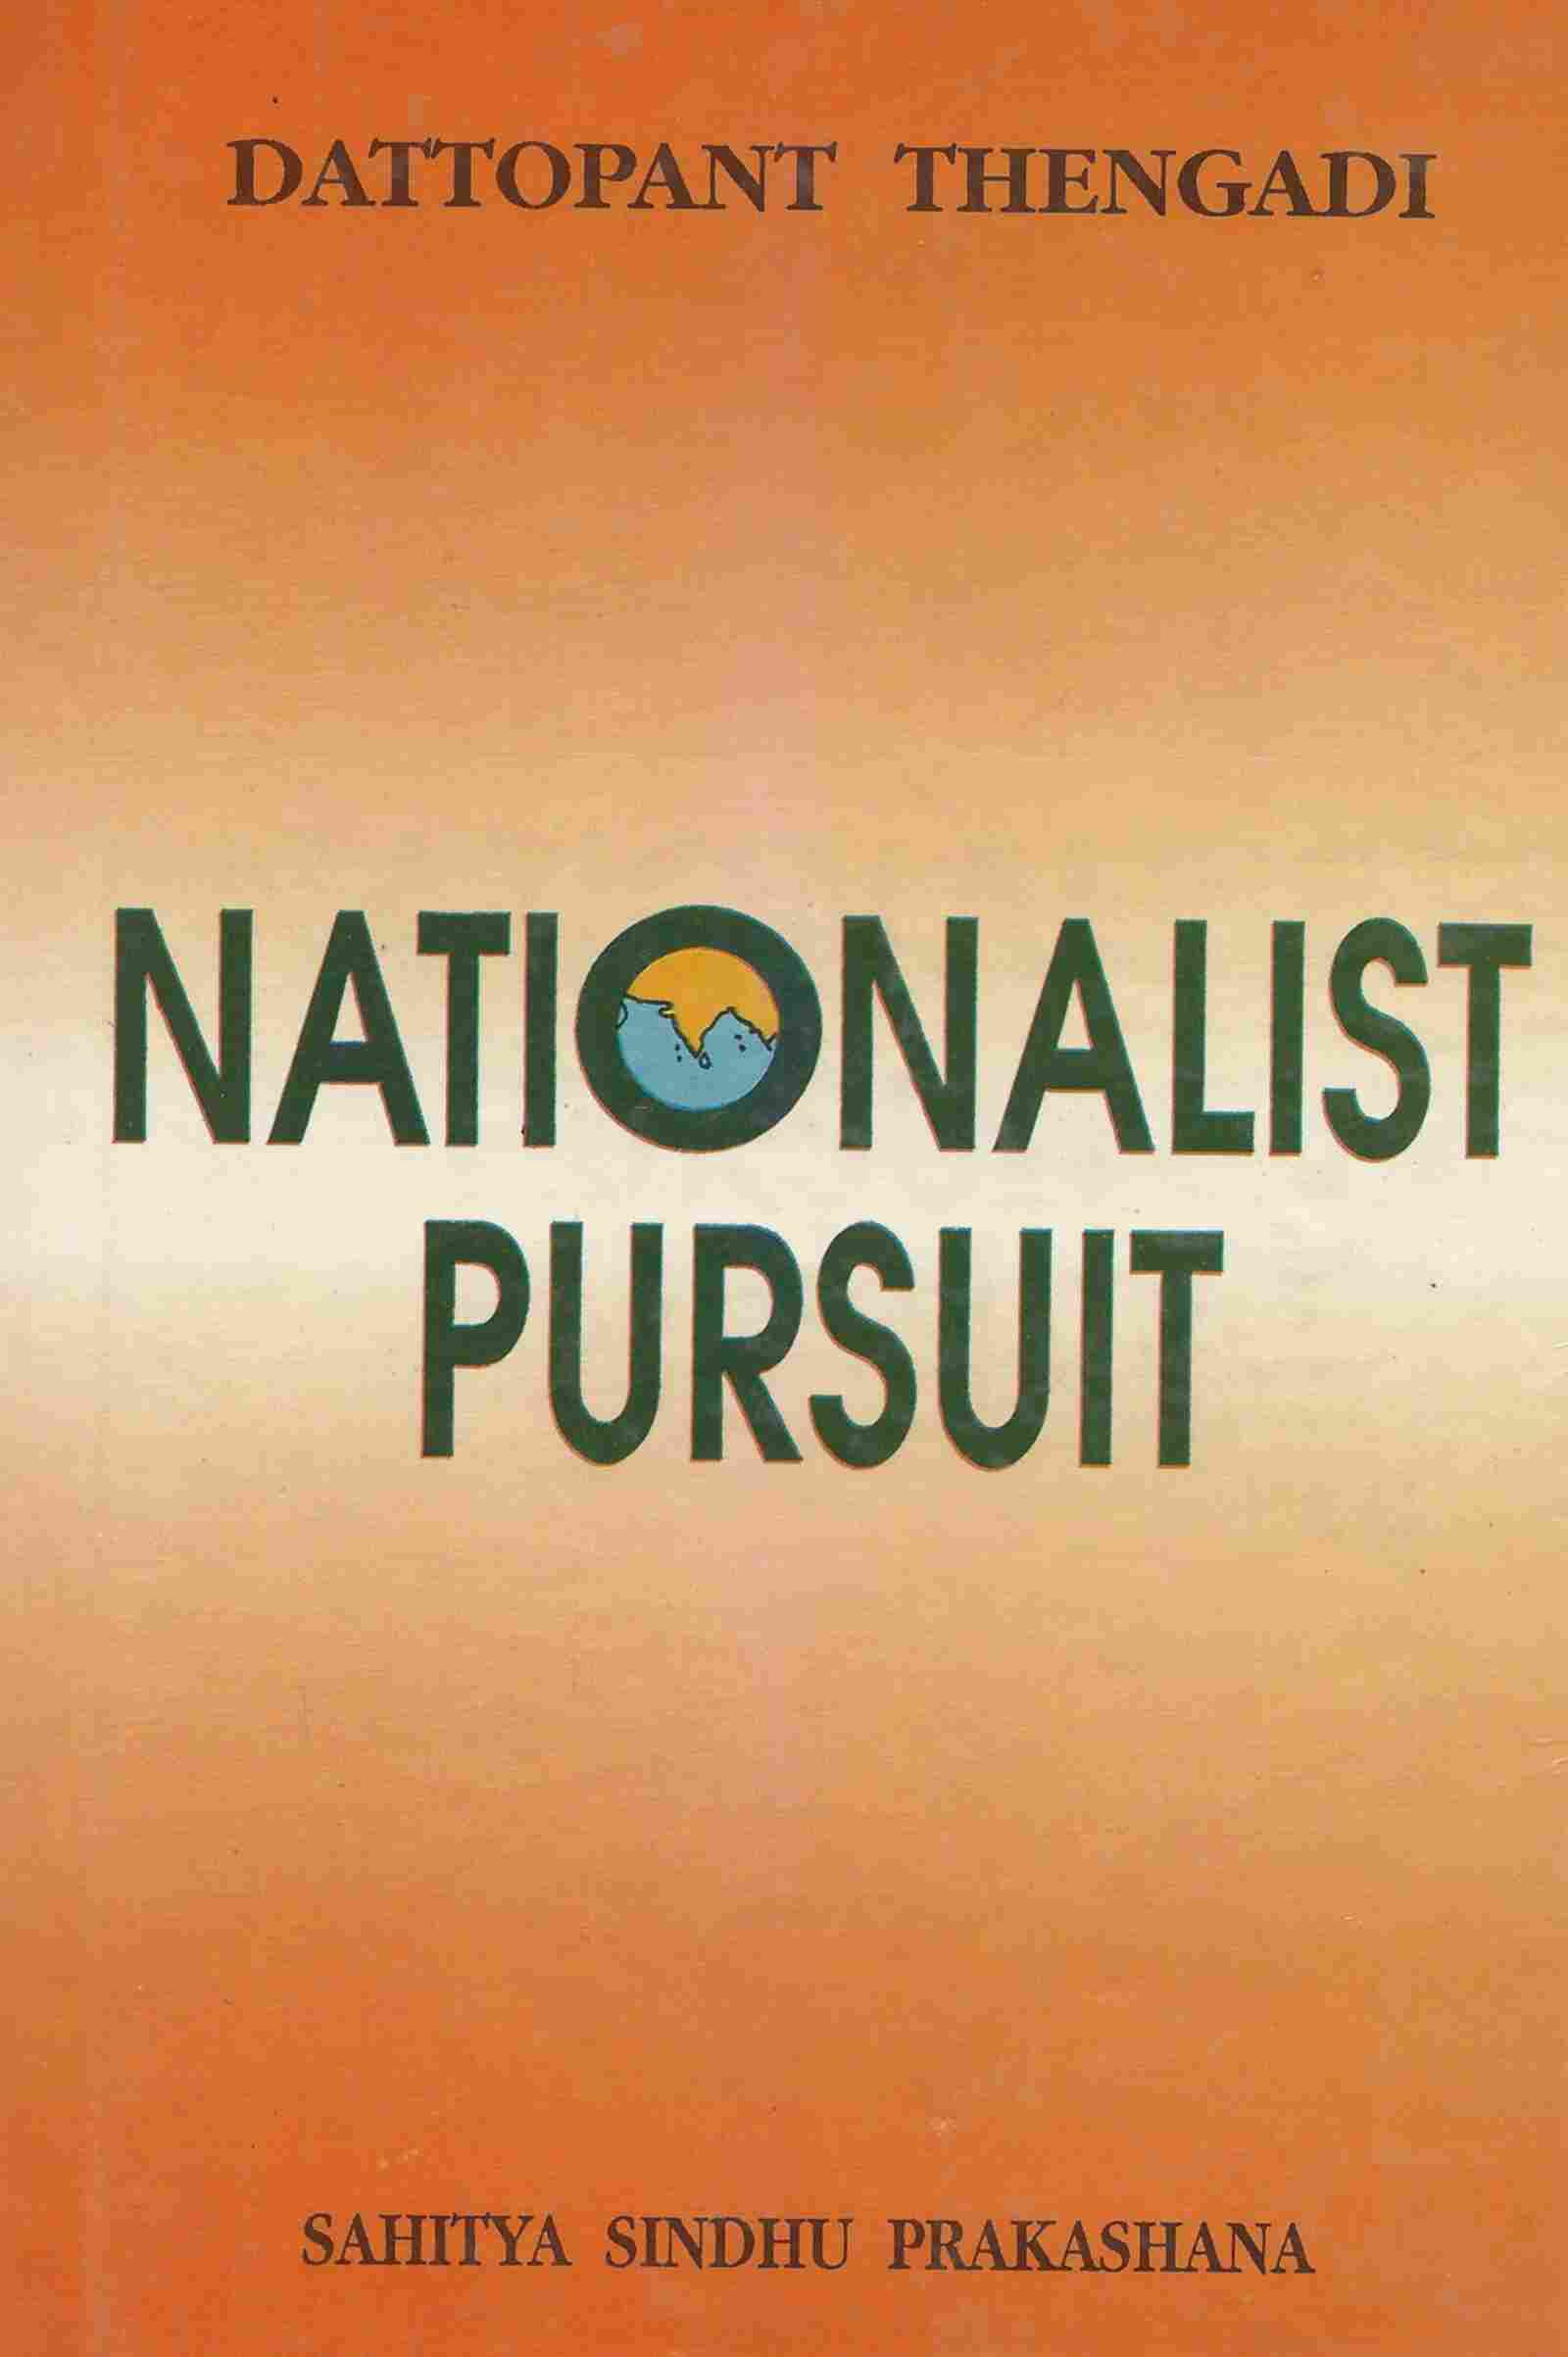 Nationalist Pursuit